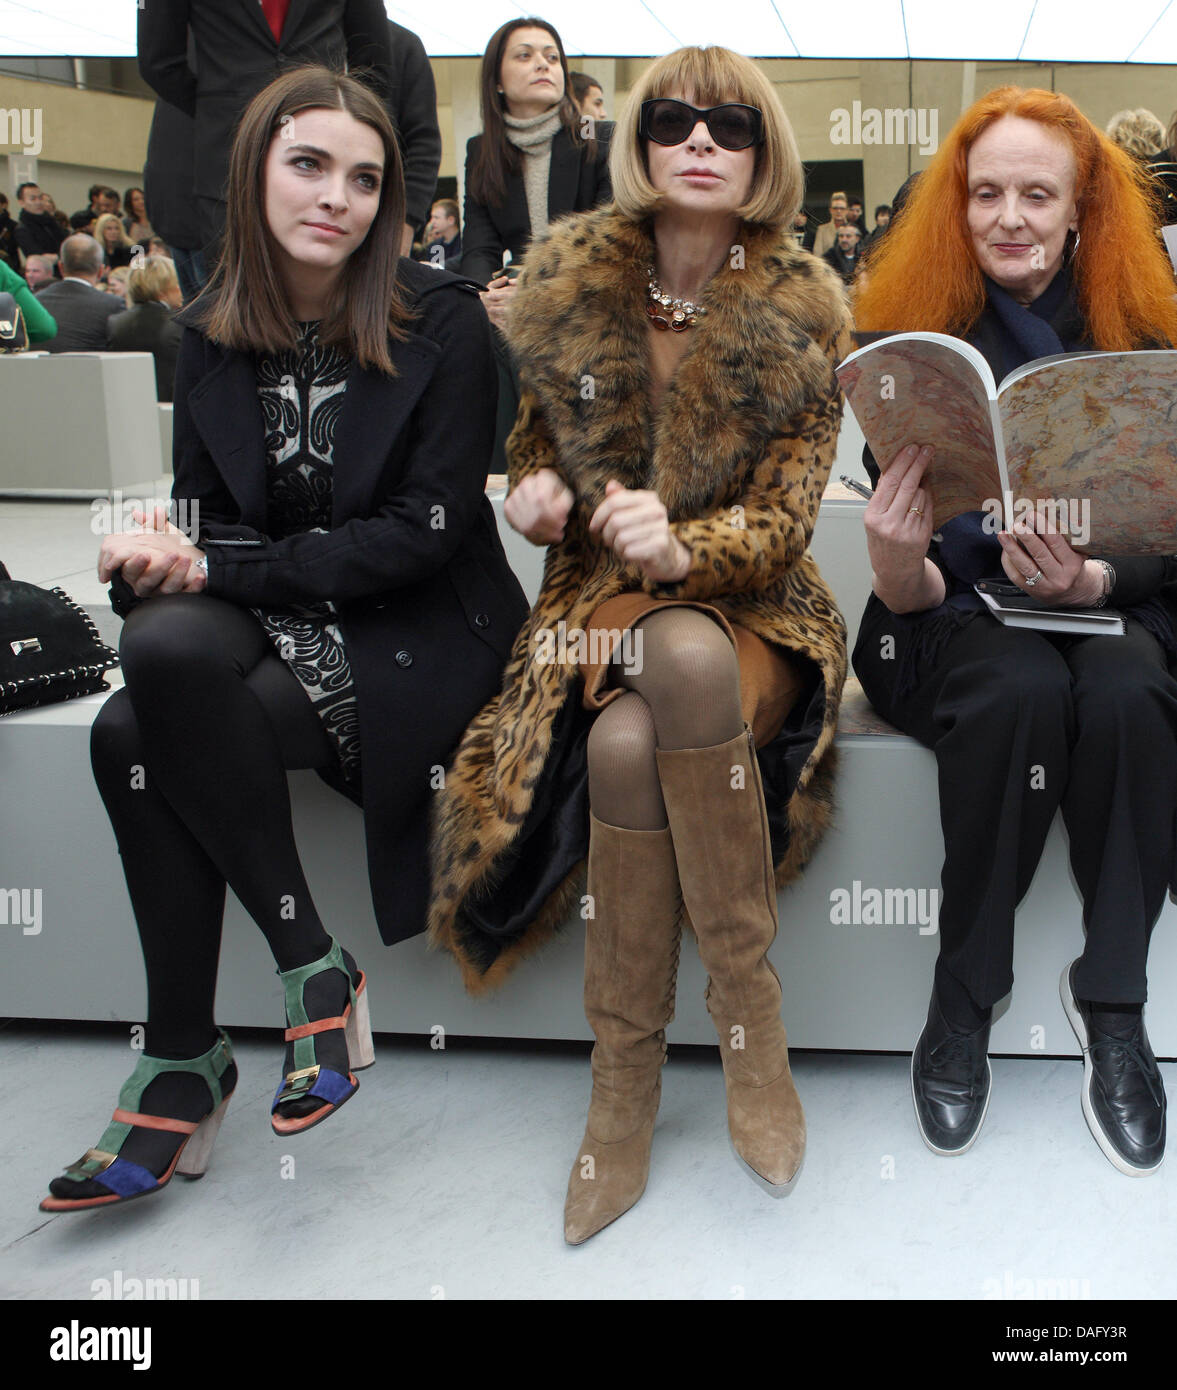 Anna Wintour (C), editor-in-chief of American Vogue, her daughter Bee Shaffer (L) and Grace Coddington, creative - Stock Image